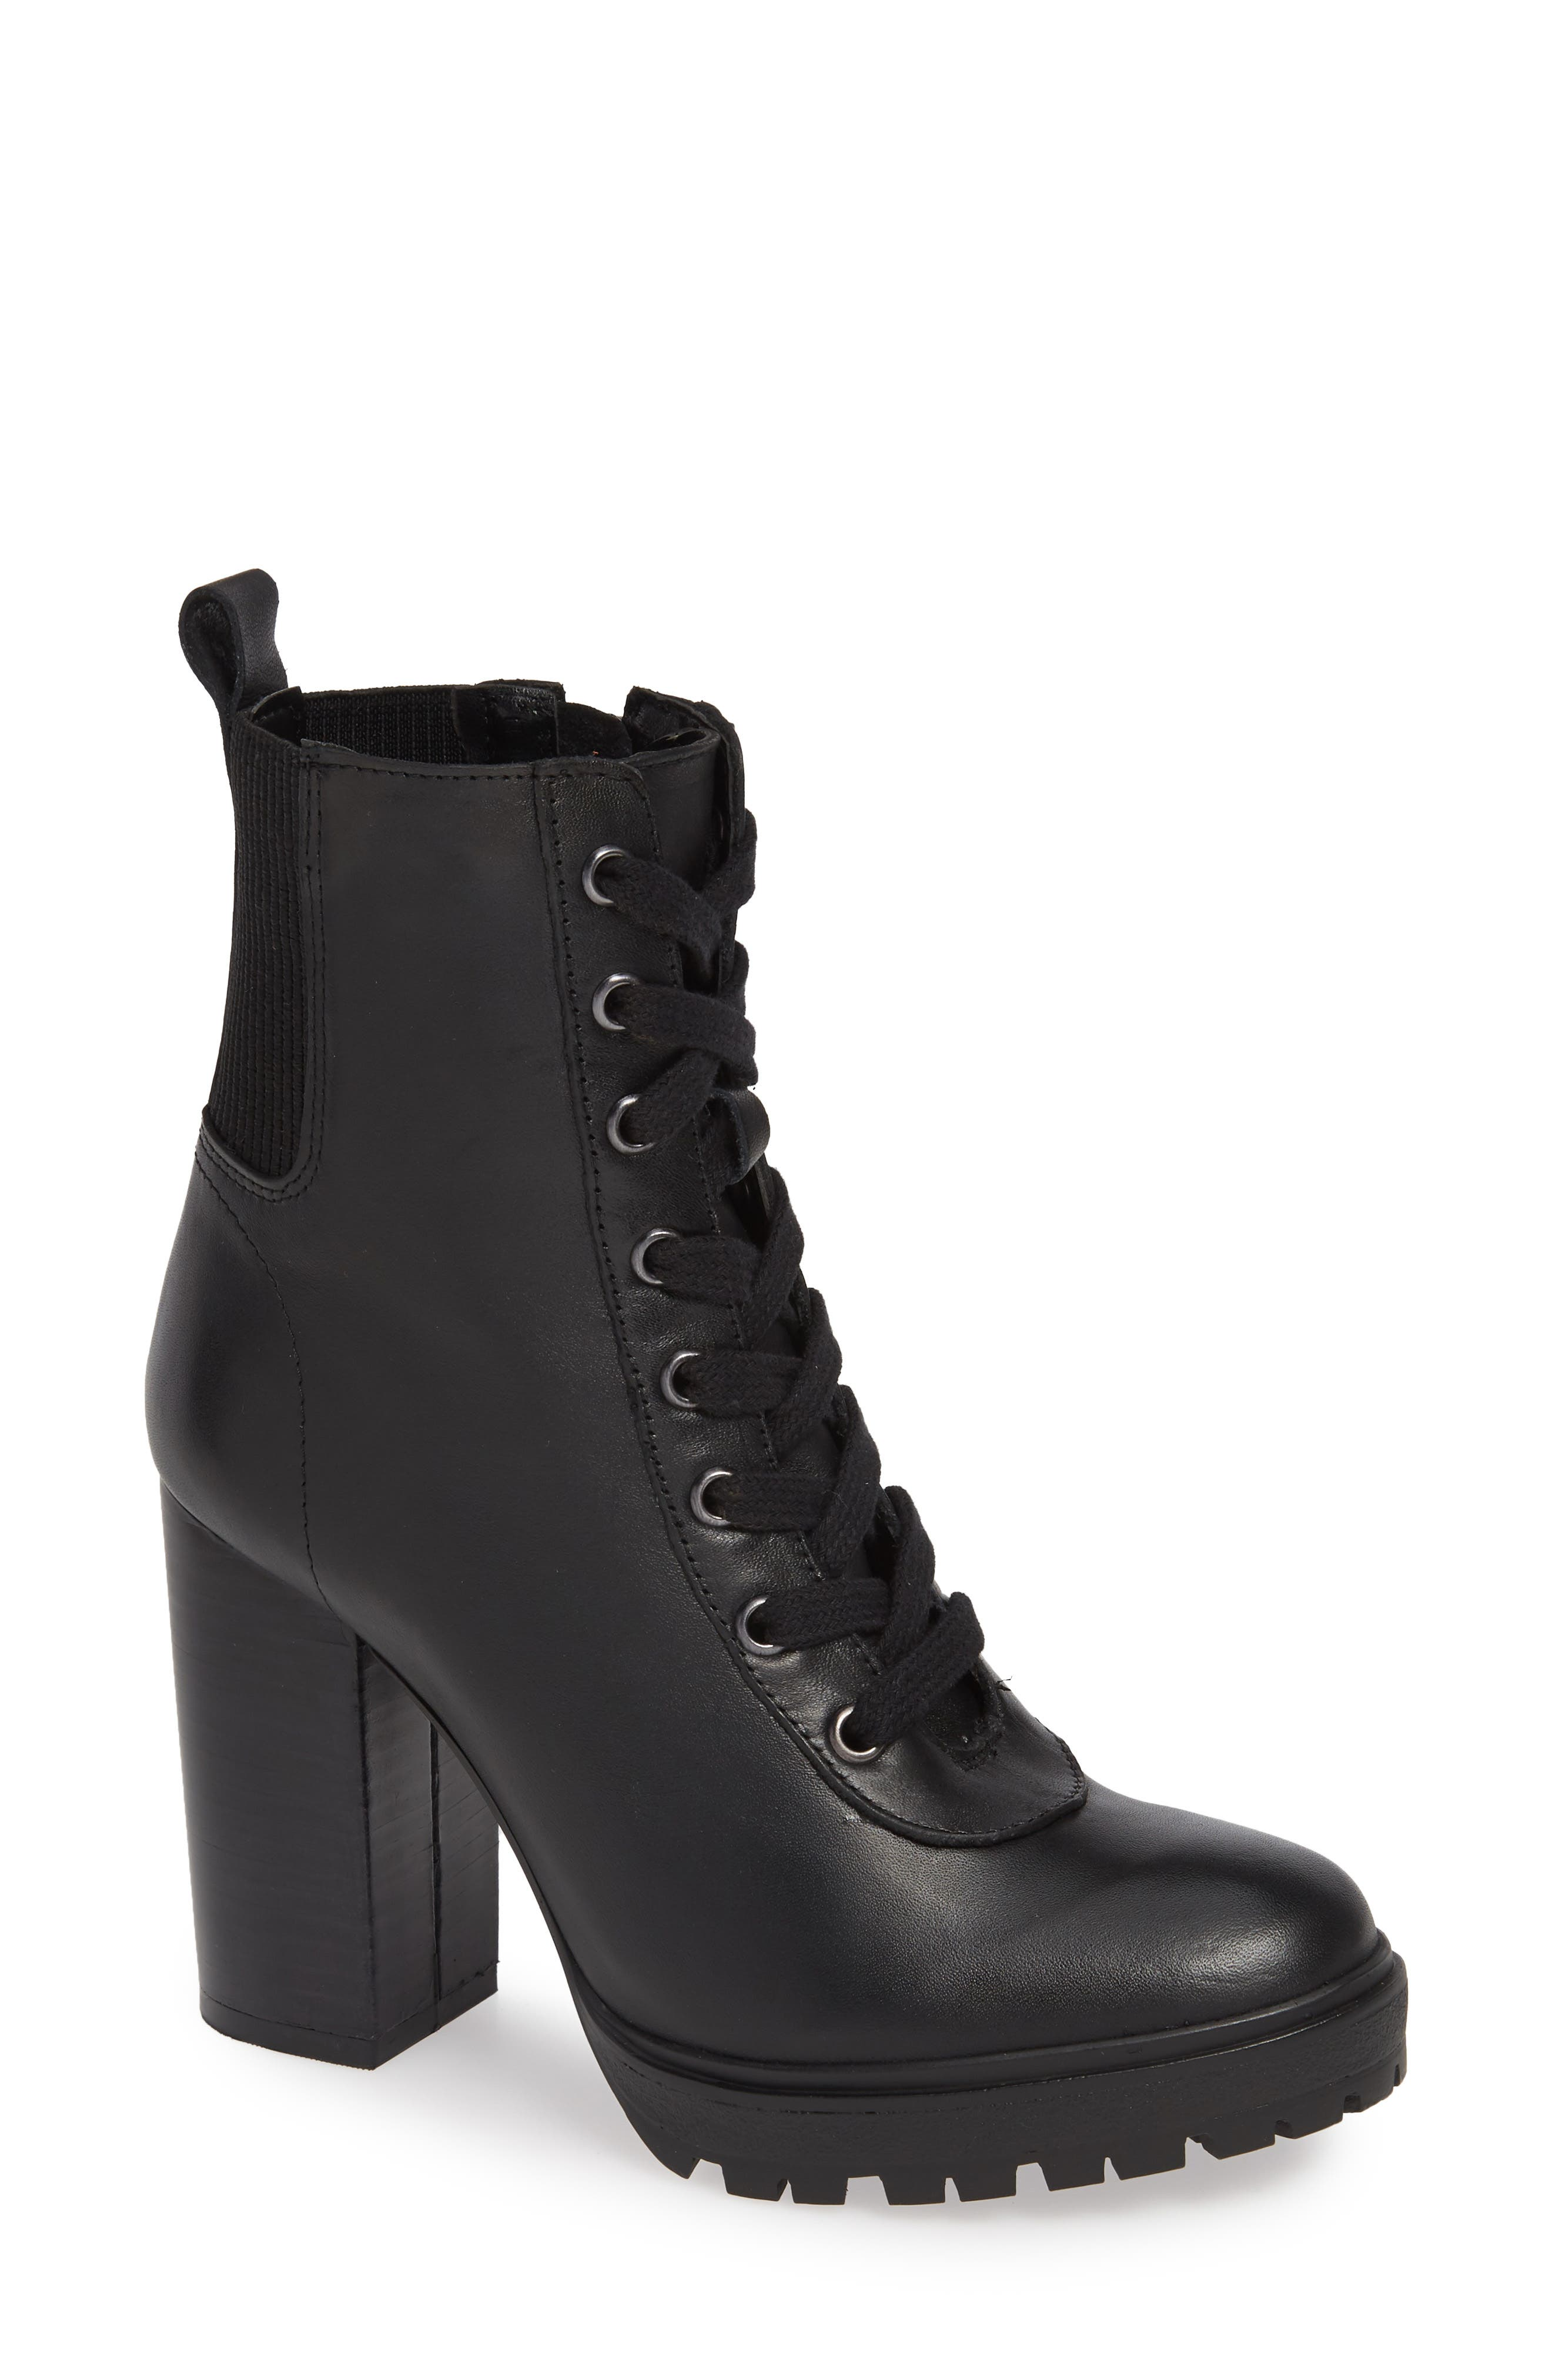 STEVE MADDEN Latch Boot, Main, color, BLACK LEATHER